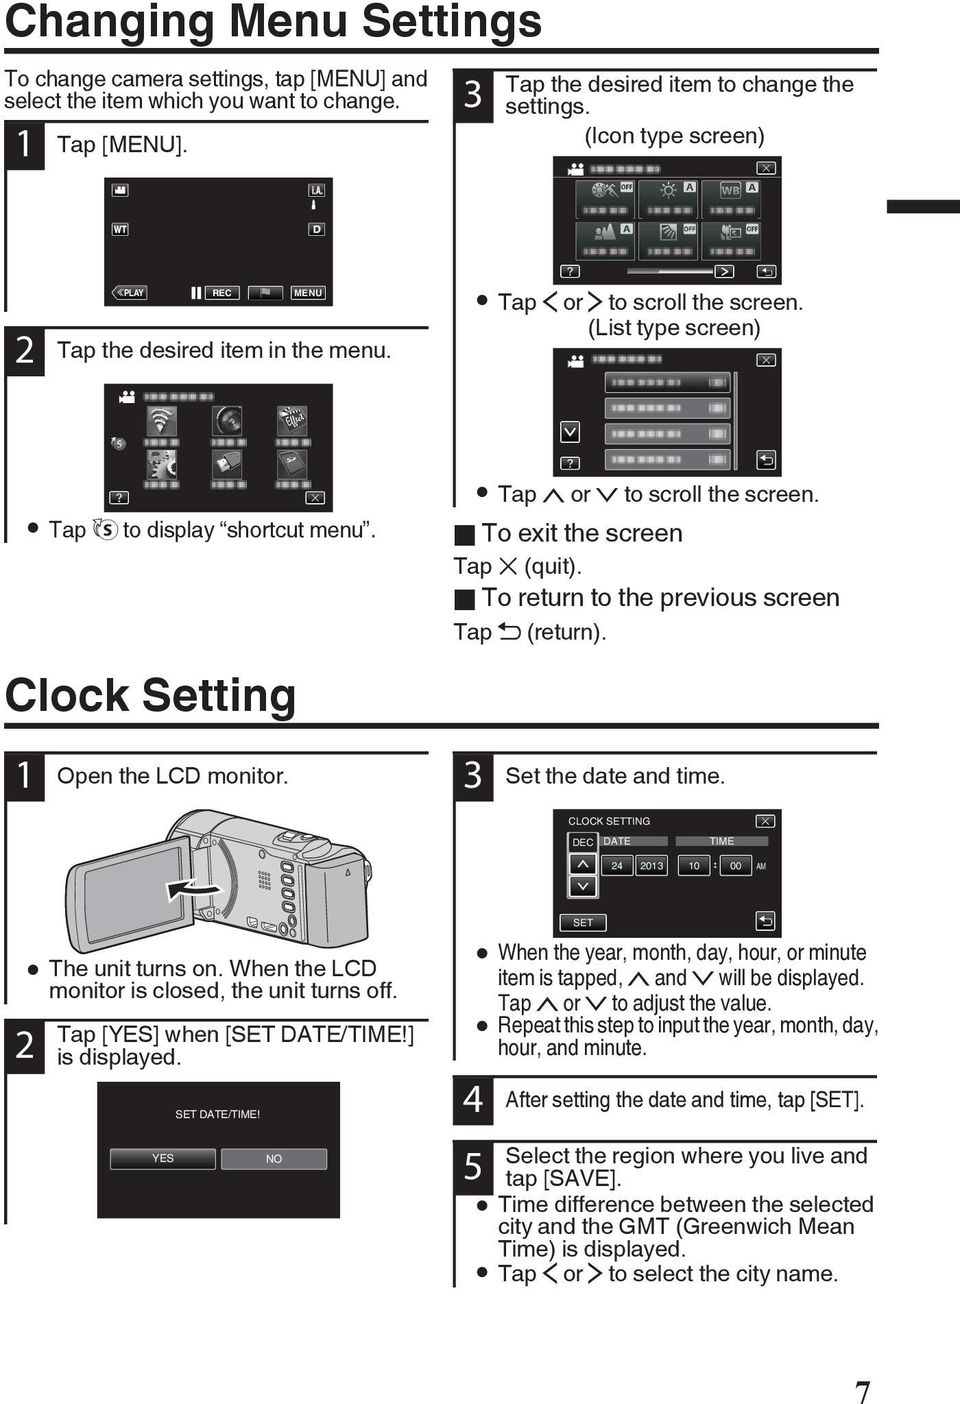 the screen Tap L (quit) o To return to the previous screen Tap J (return) 3 Set the date and time CLOCK SETTING DEC DATE TIME 24 2013 10 00 AM 0 The unit turns on When the LCD monitor is closed, the